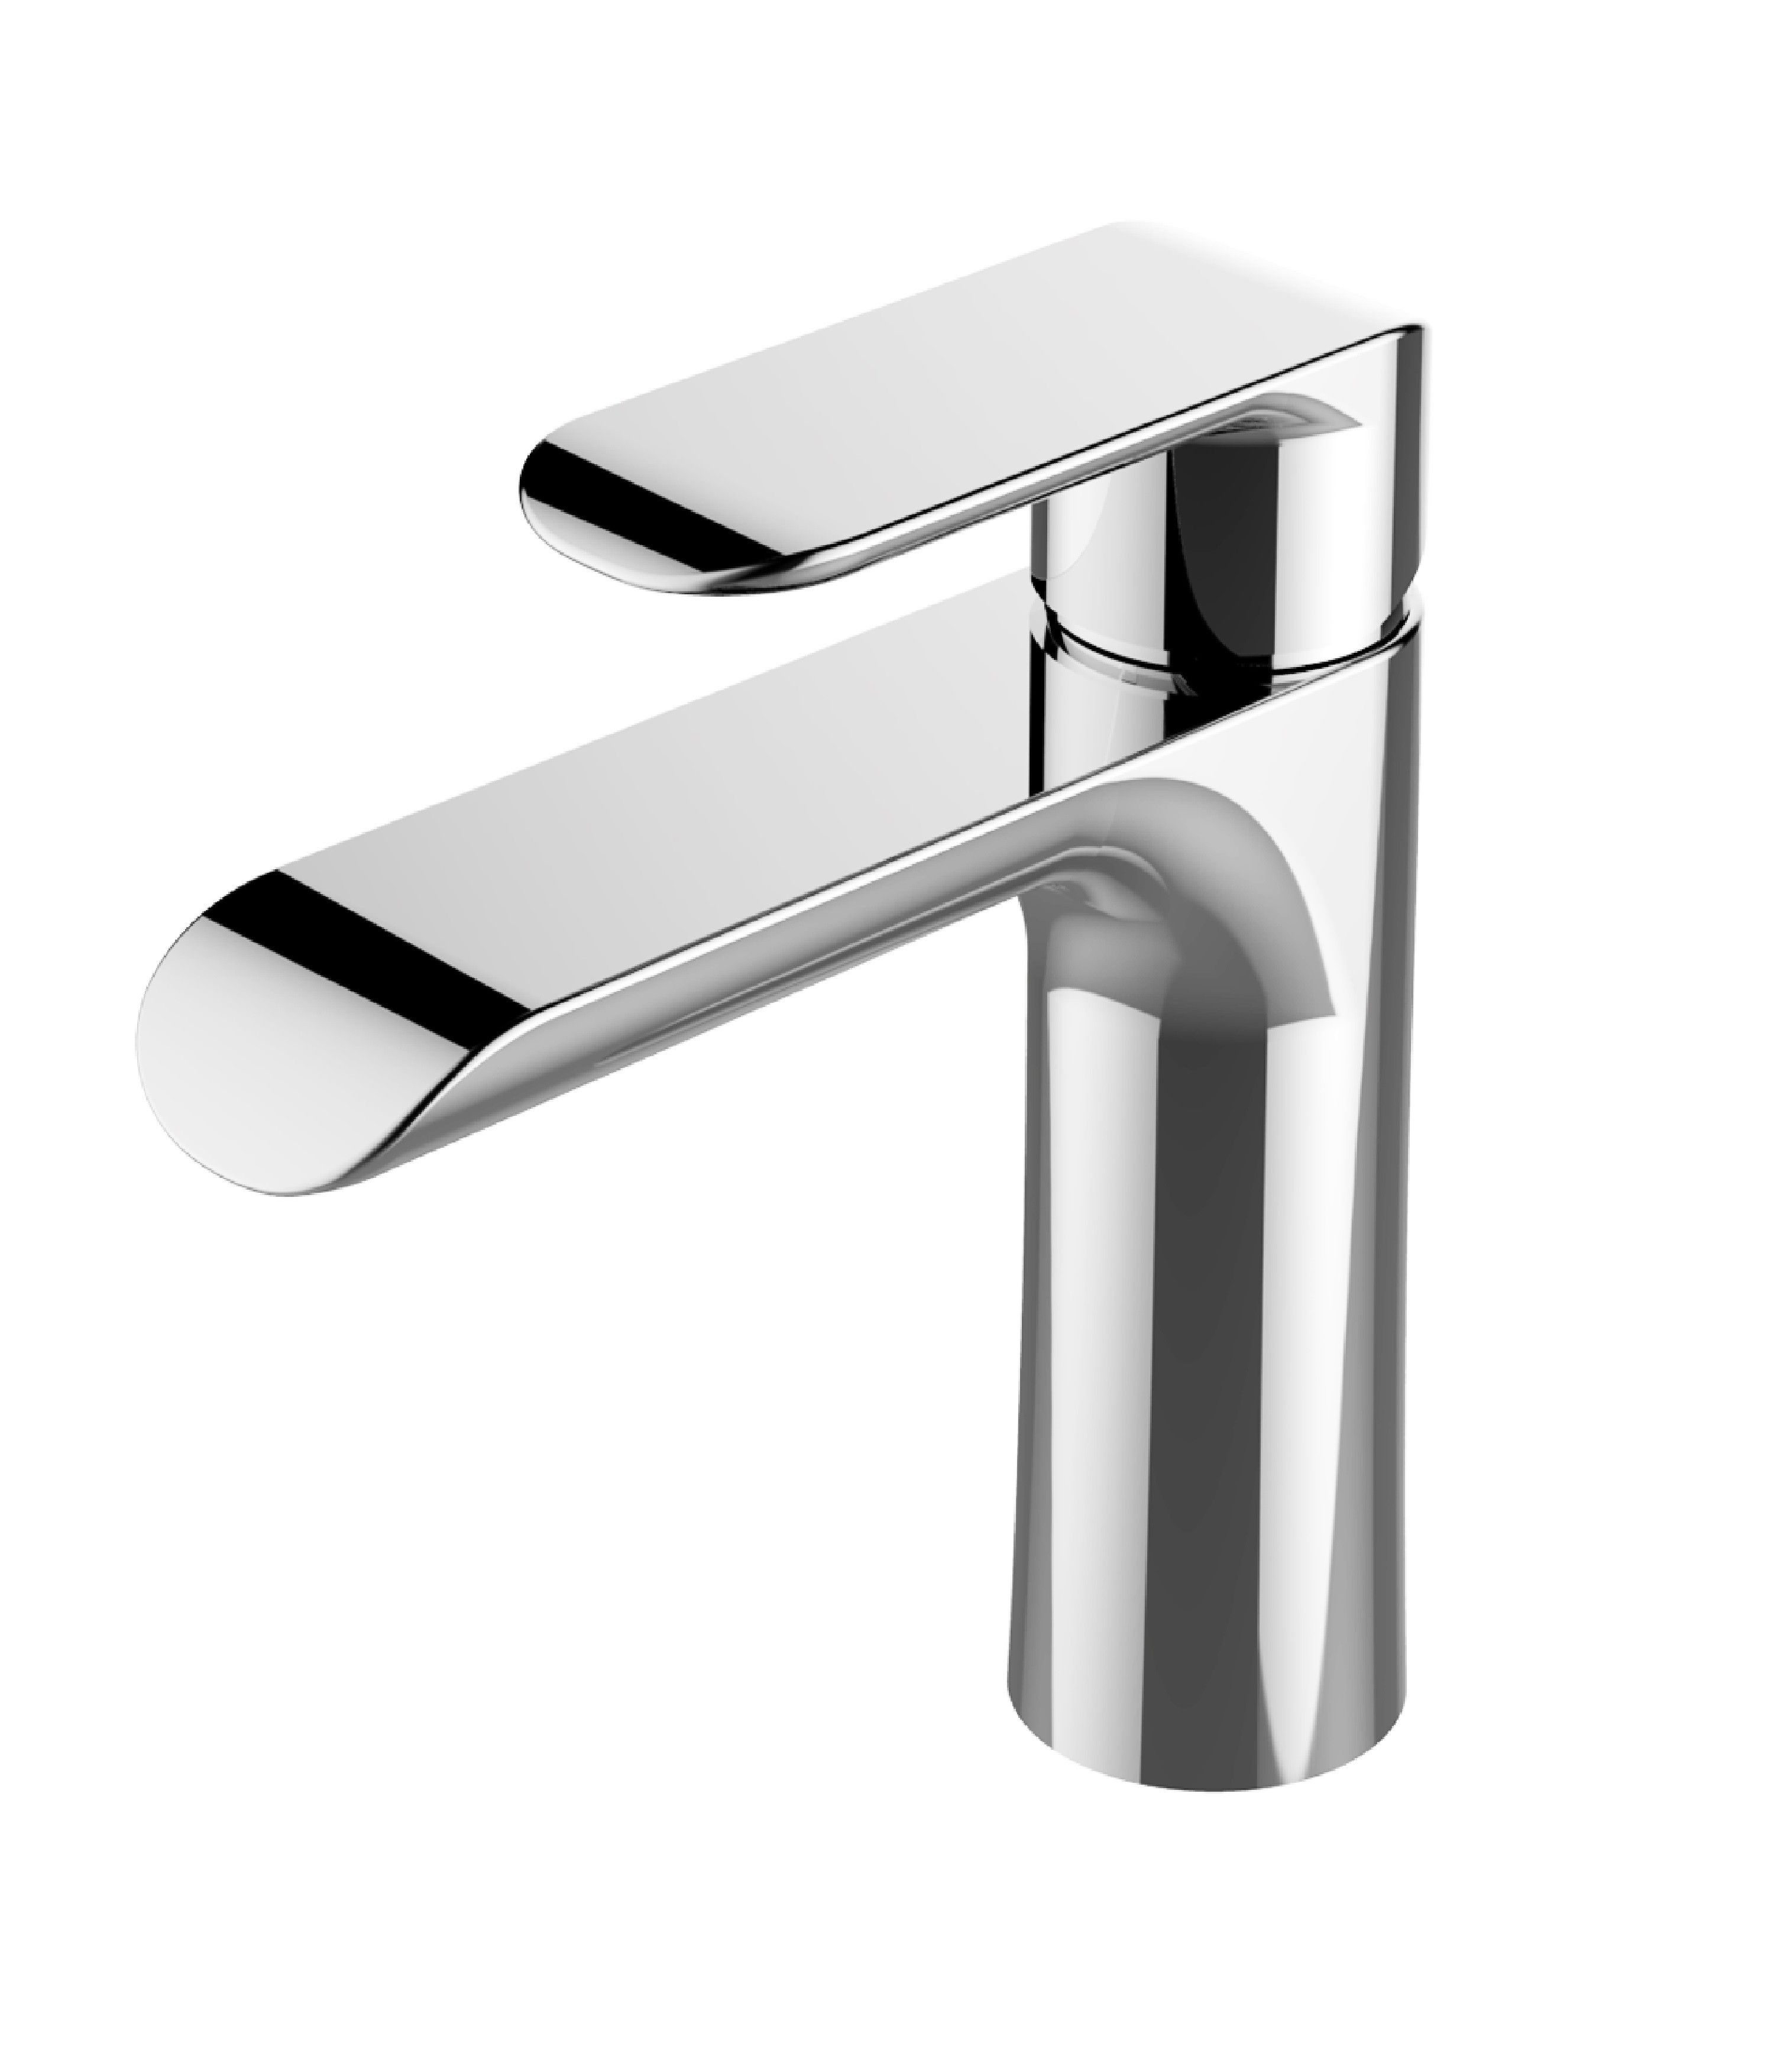 shower waterfall designer handheld american bathroom single with bathtub hardware handle delta sink standard faucets faucet